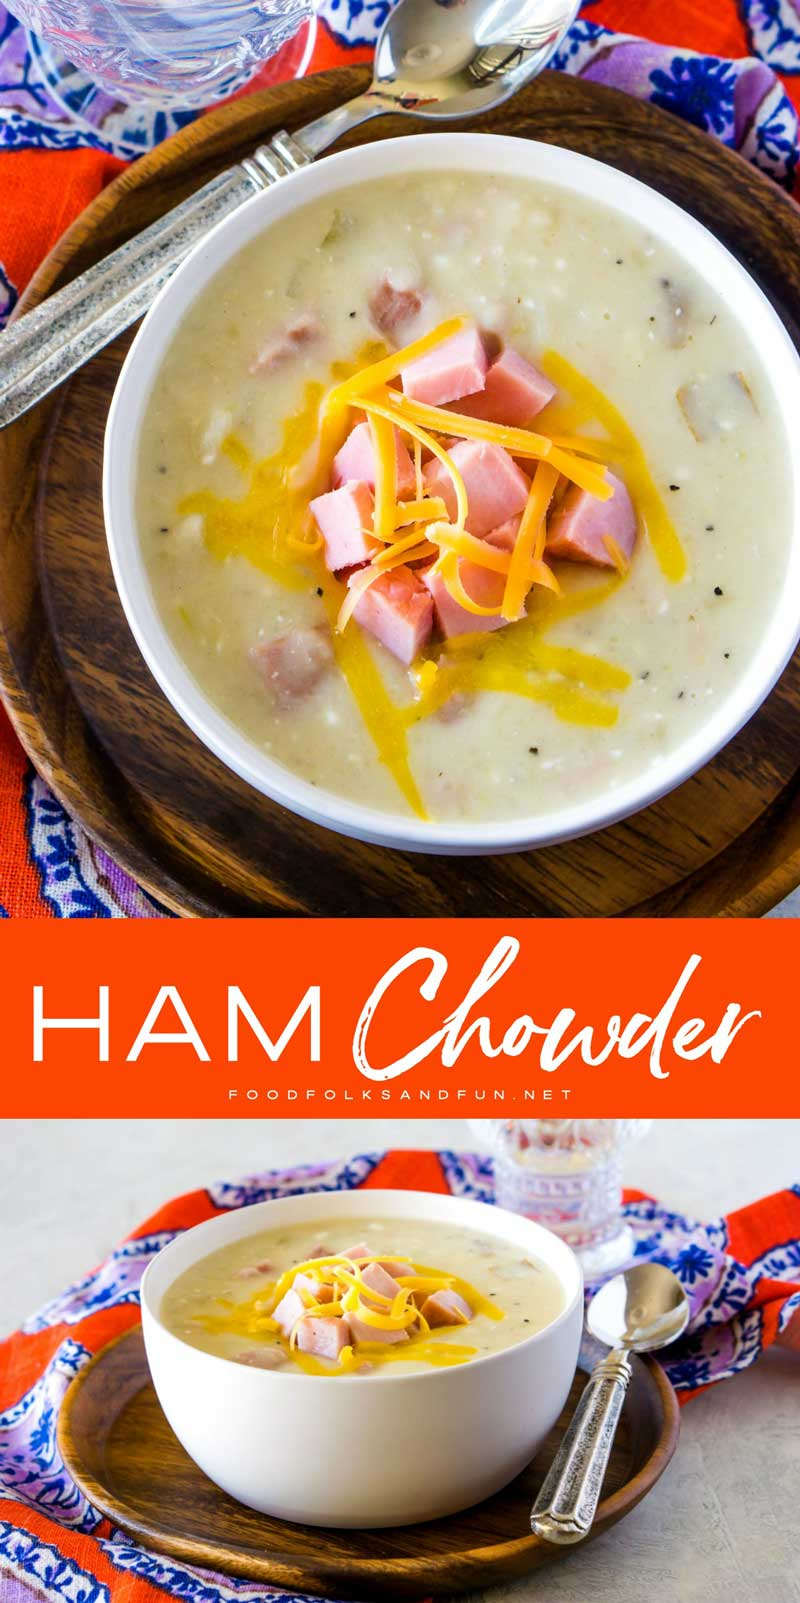 This Slow Cooker Ham Chowder is creamy, cheesy and so easy to make. It's a great way to turn leftover ham into a comforting weeknight dinner! 